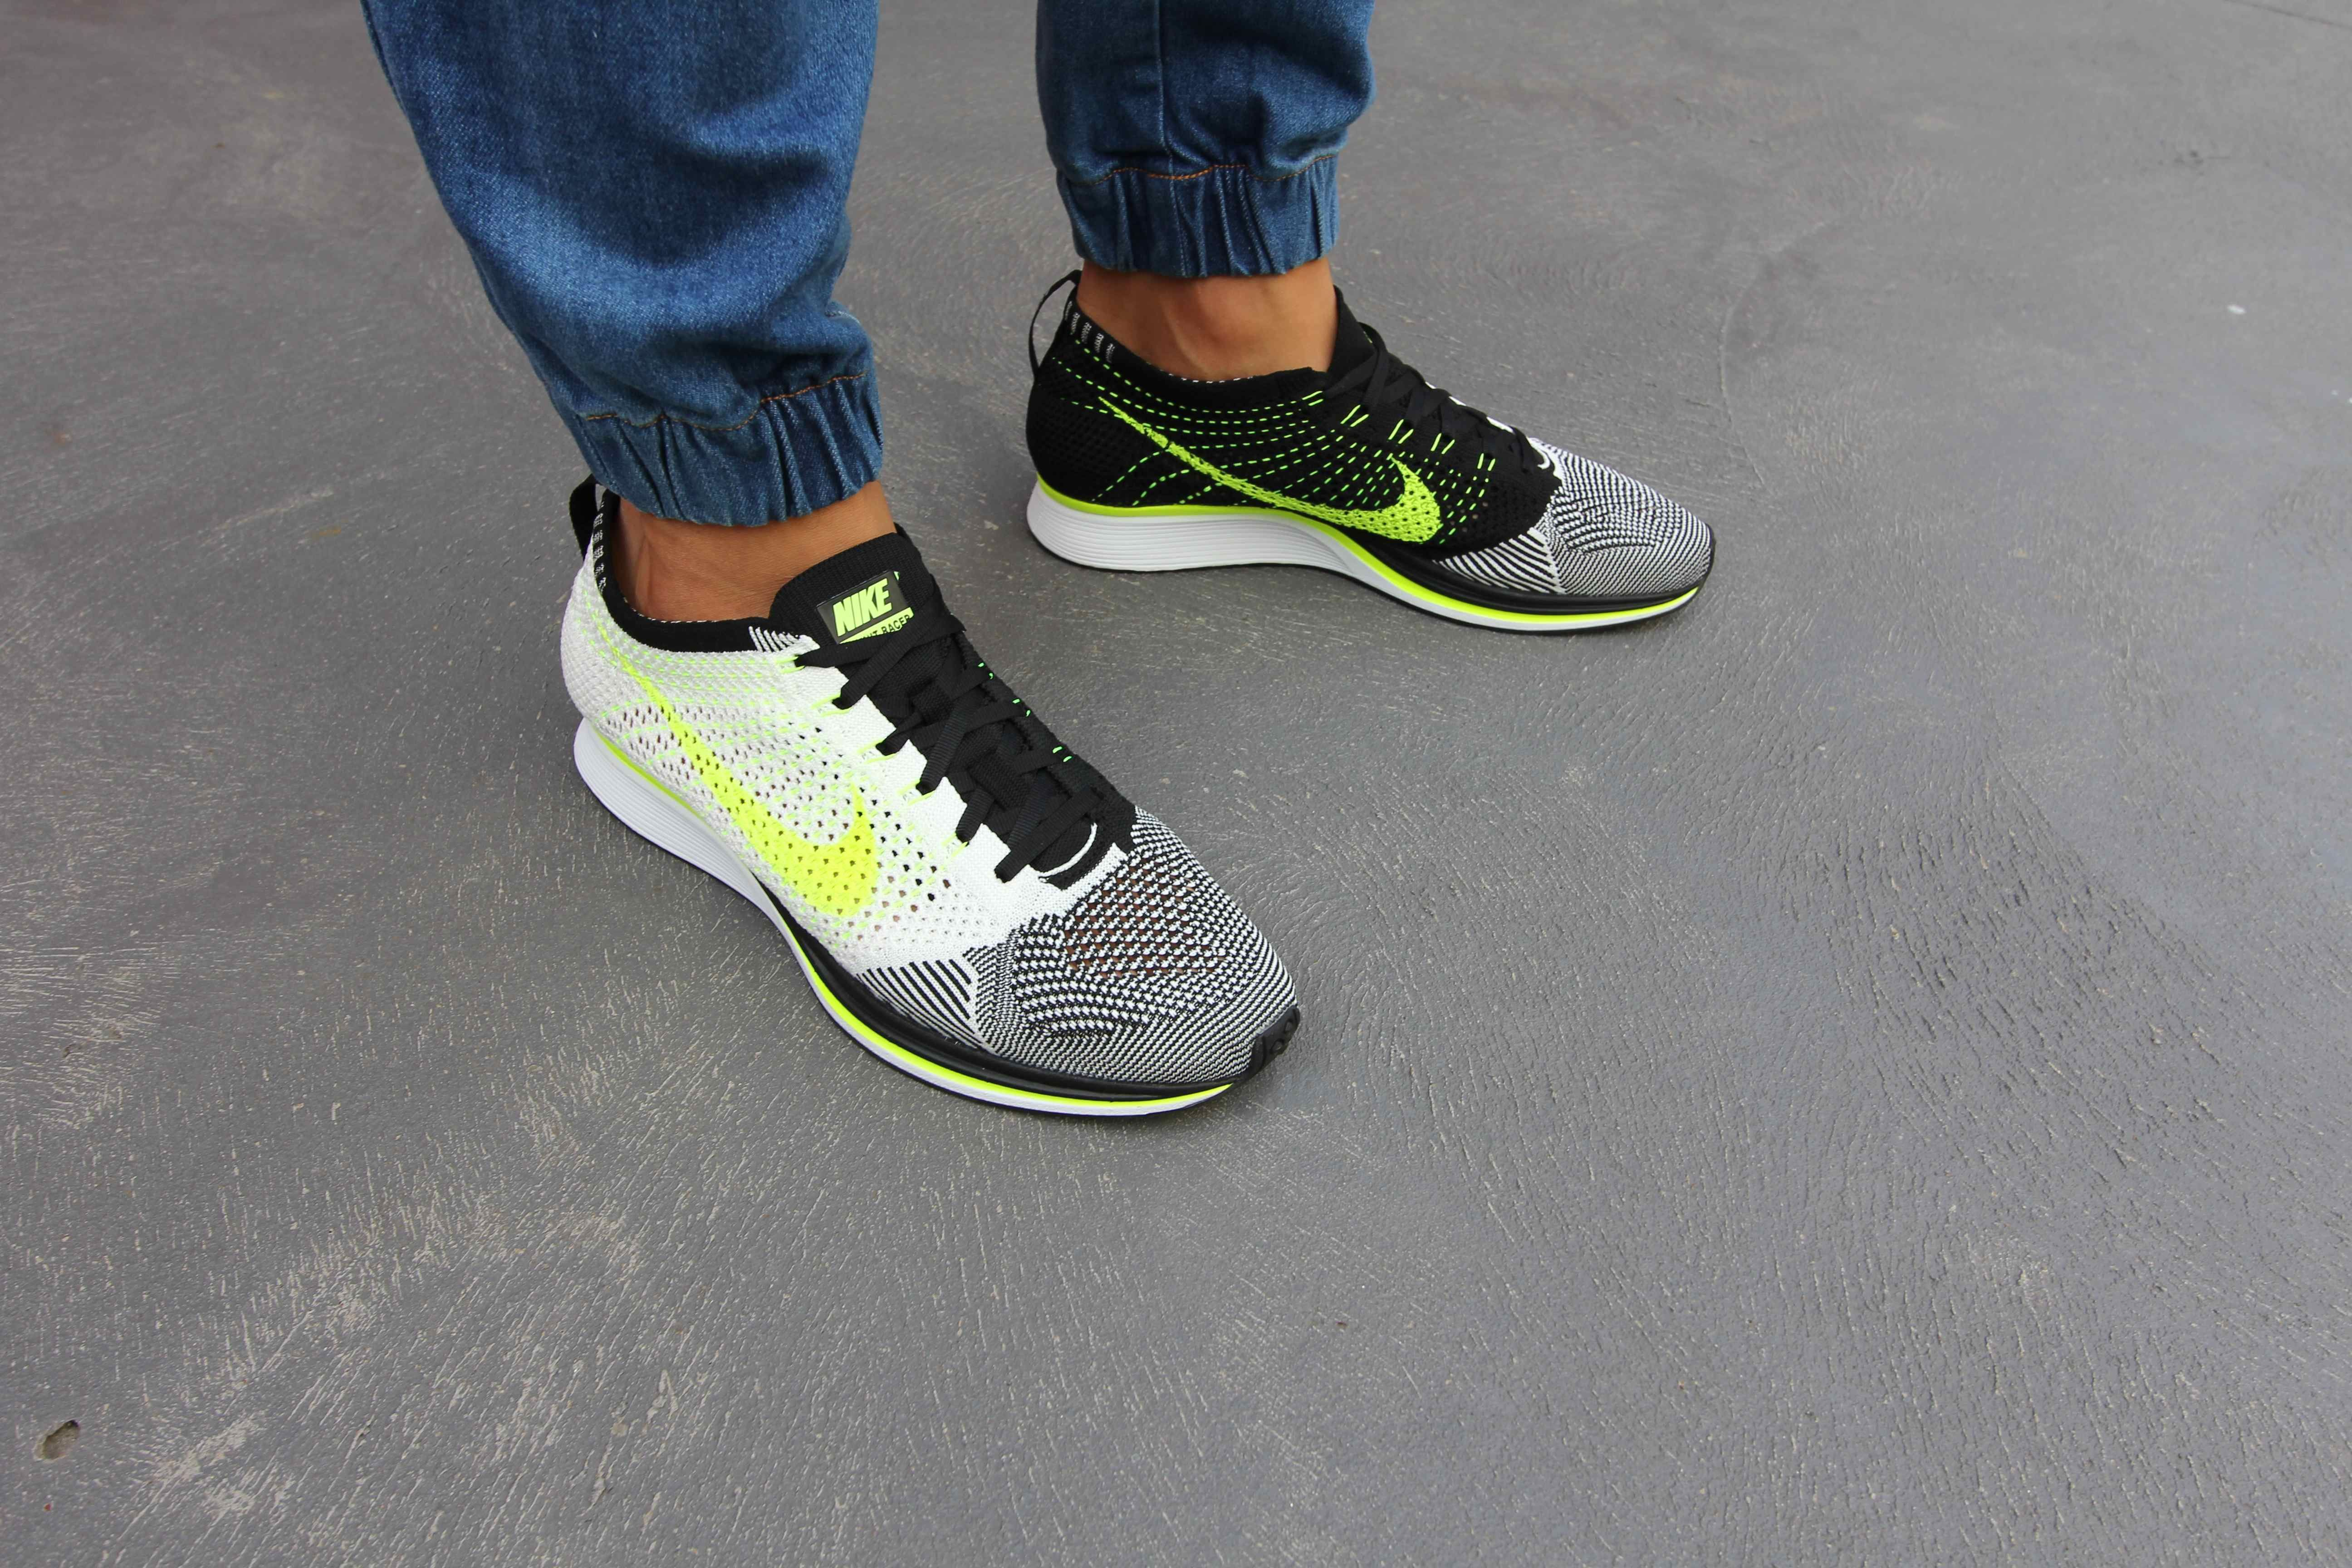 cheap for discount 6ef86 a9c88 Mens fashion Nike Flyknit Racer, SailBlackVolt For MORE mens fashion in  street style ...